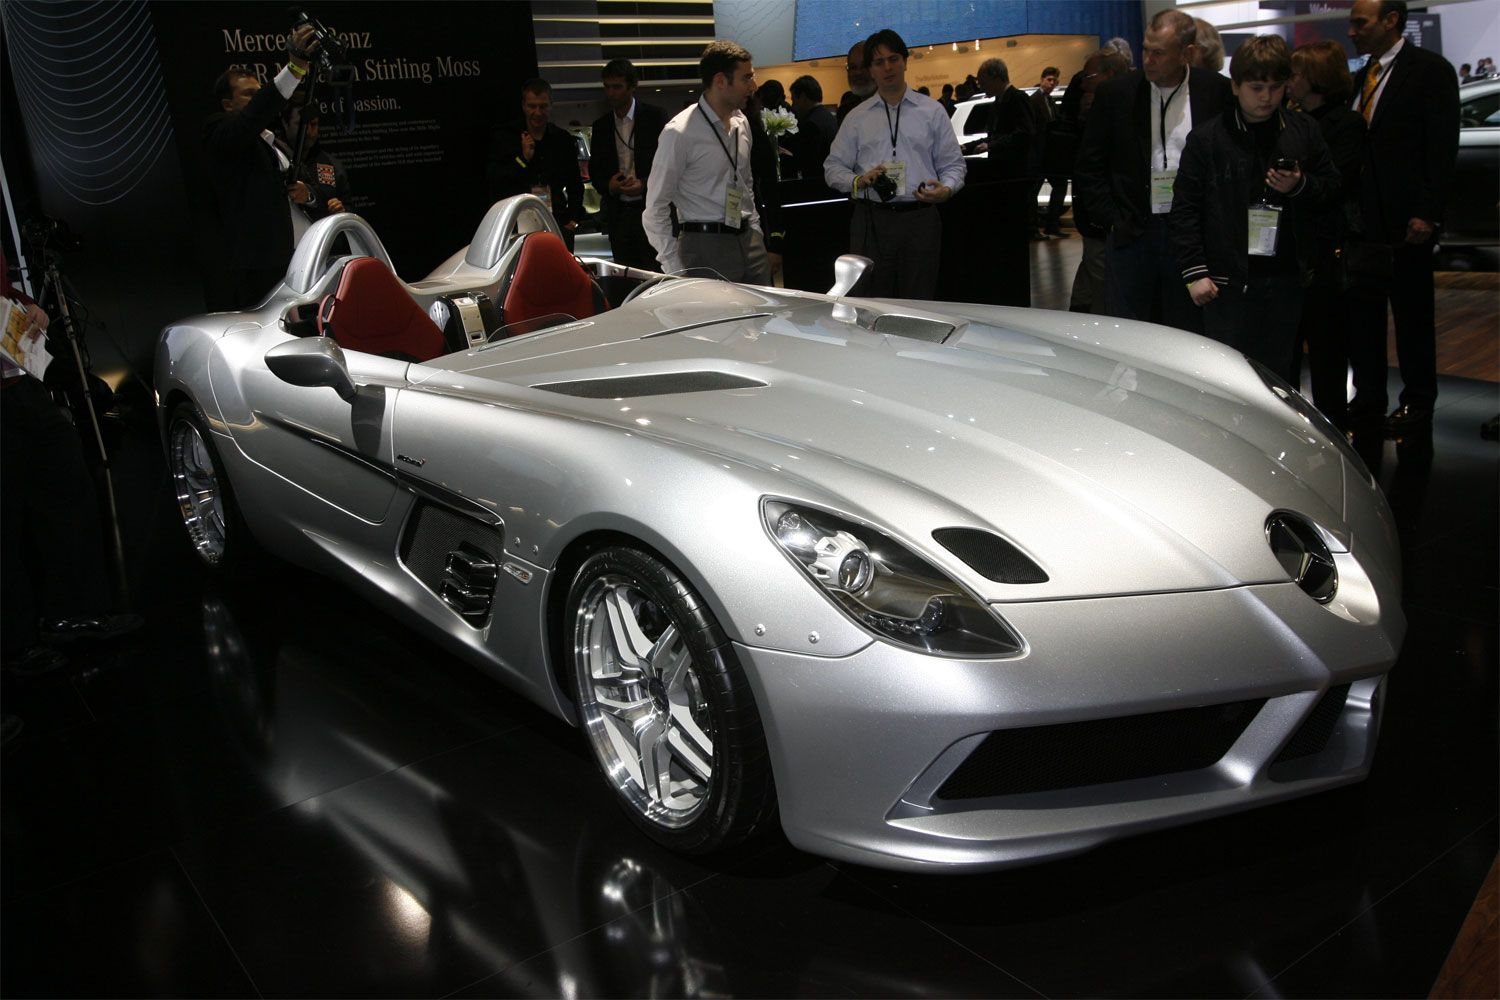 mercedes benz slr mclaren stirling moss. Black Bedroom Furniture Sets. Home Design Ideas